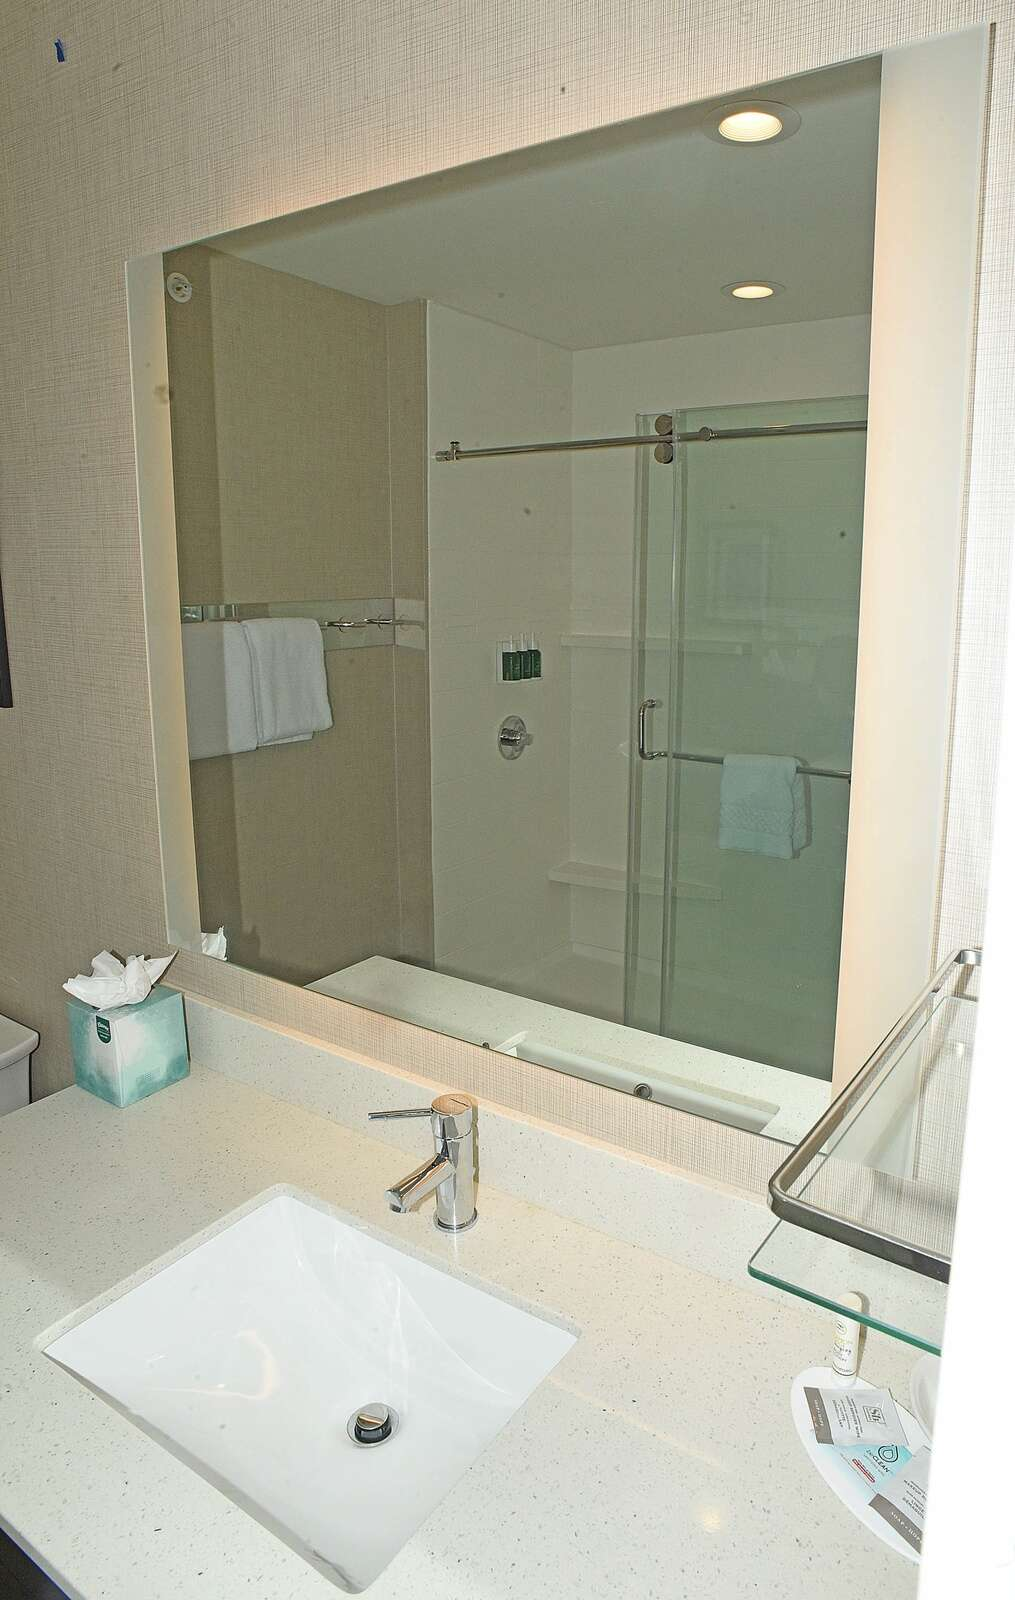 The Residence Inn by Marriott offers guests modern, spacious bathrooms. (Photo by John F. Russell)